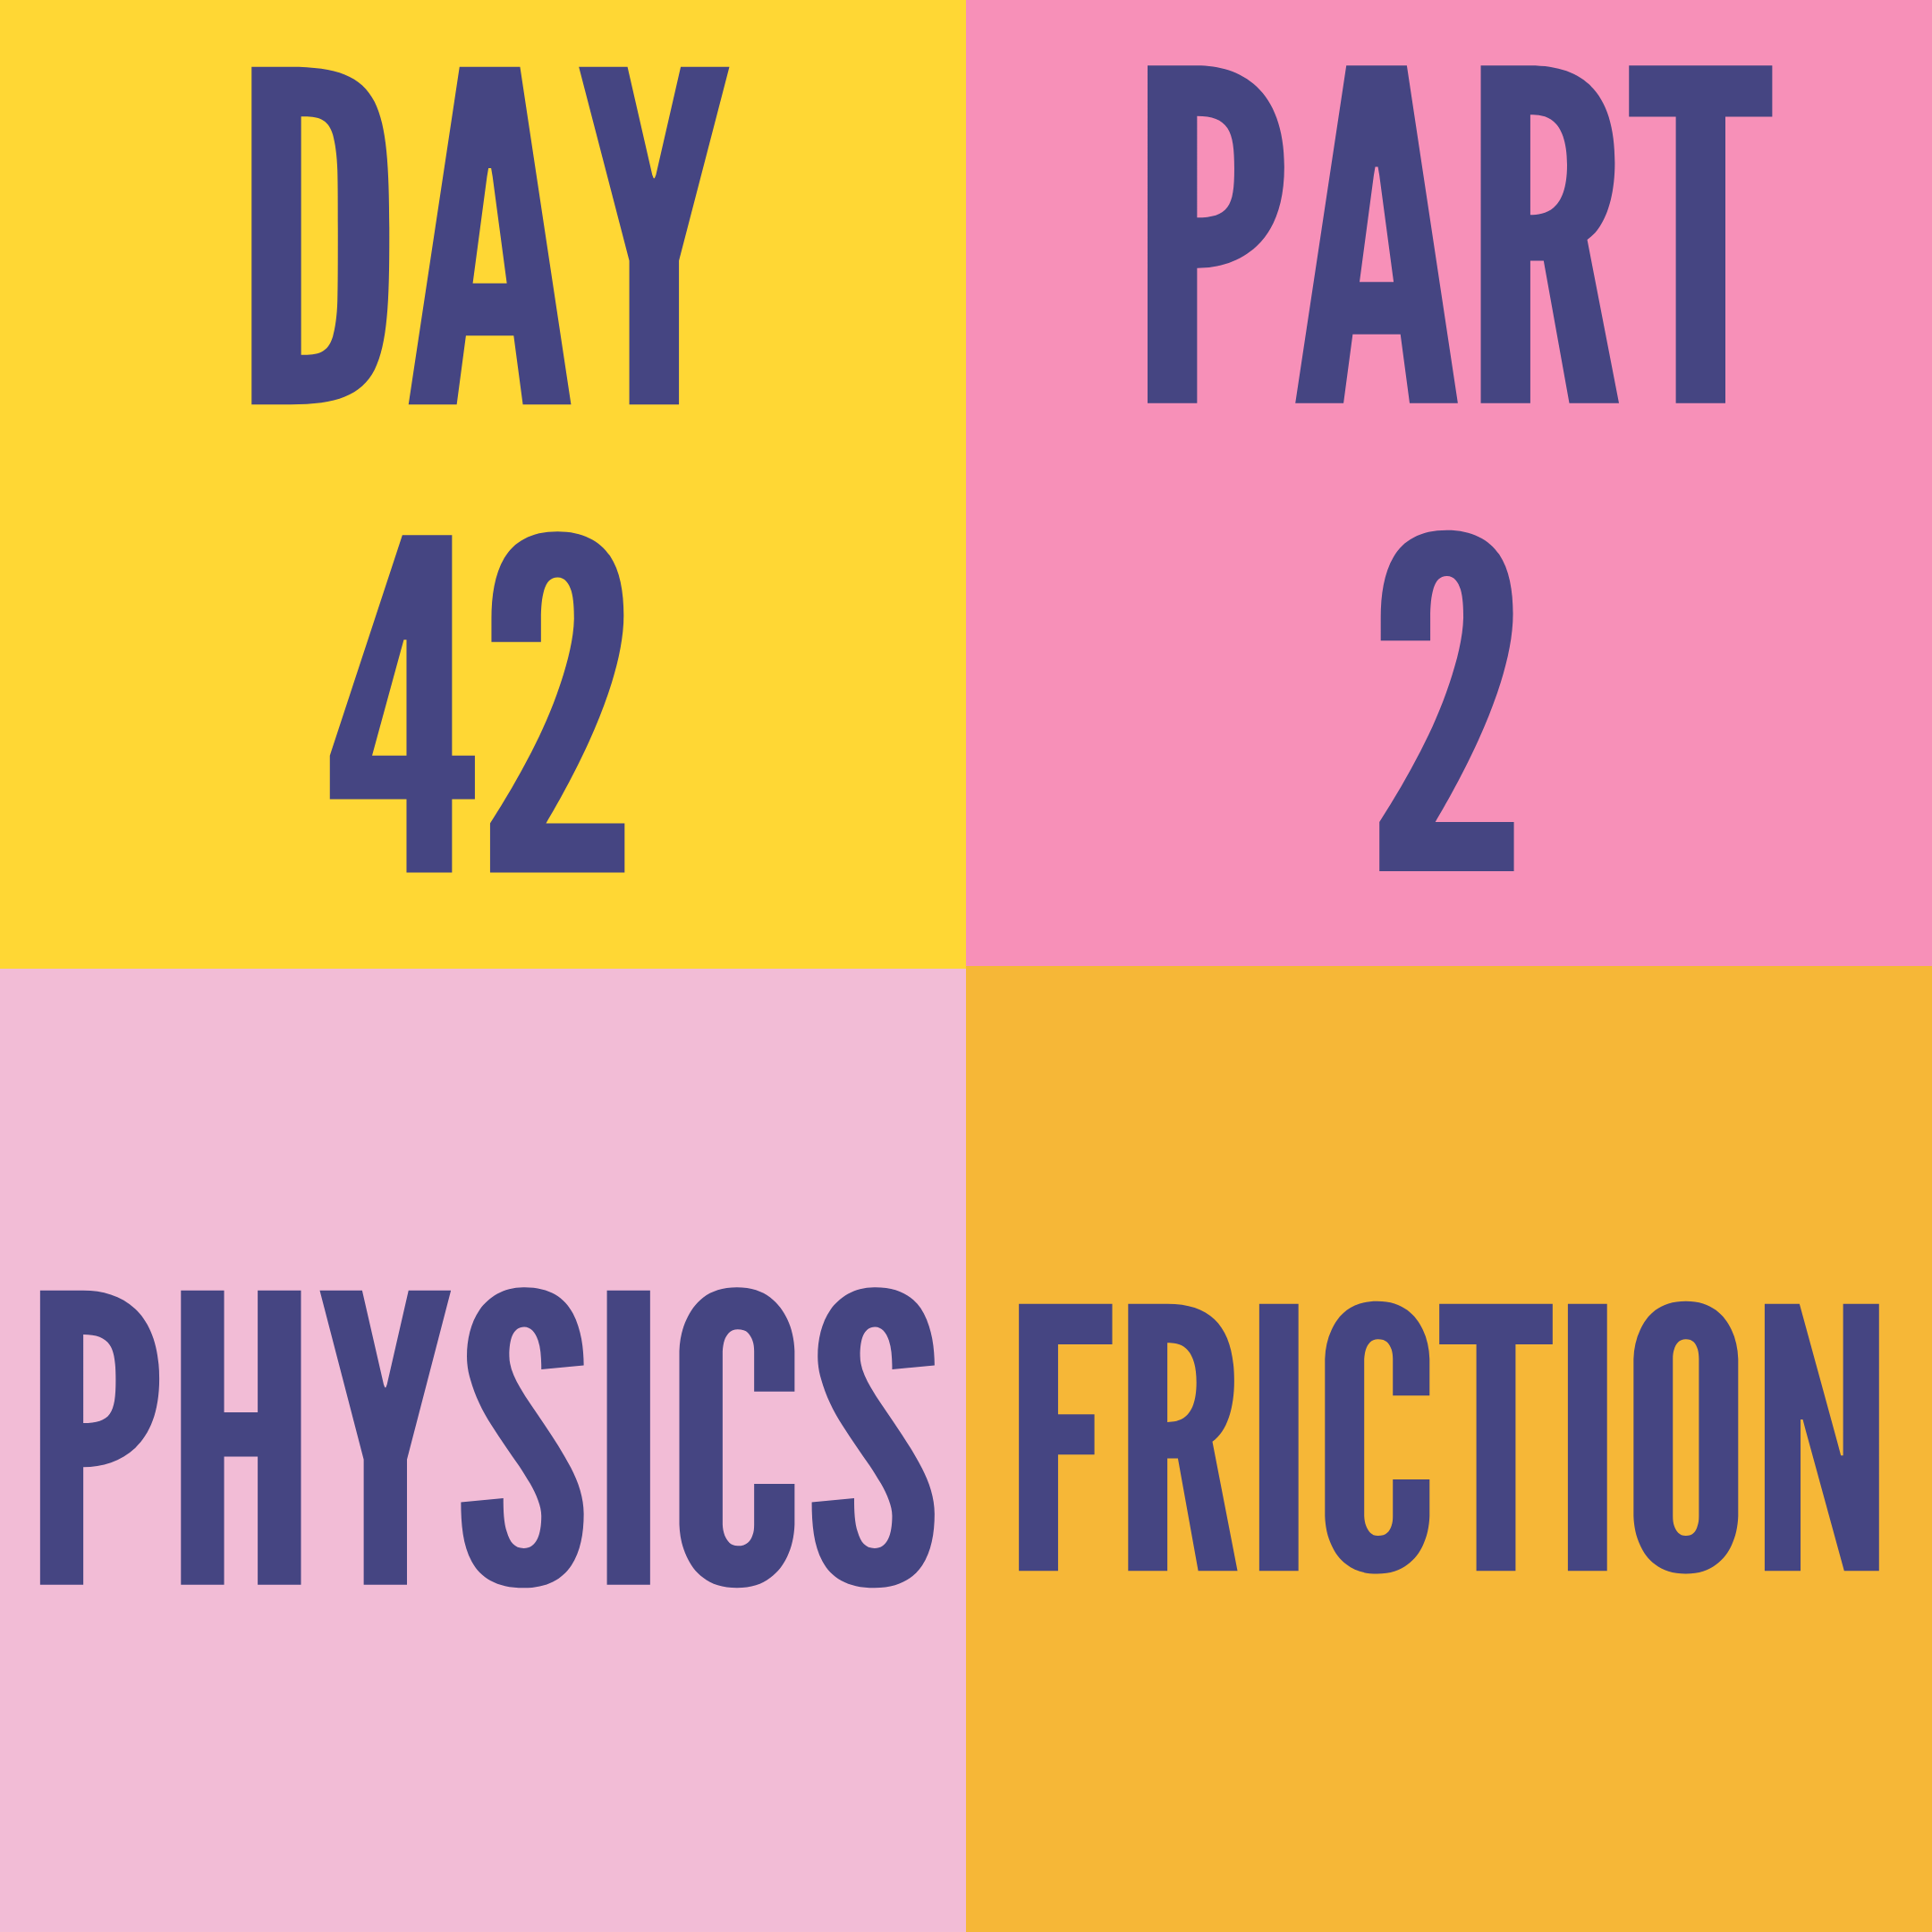 DAY-42 PART-2 FRICTION